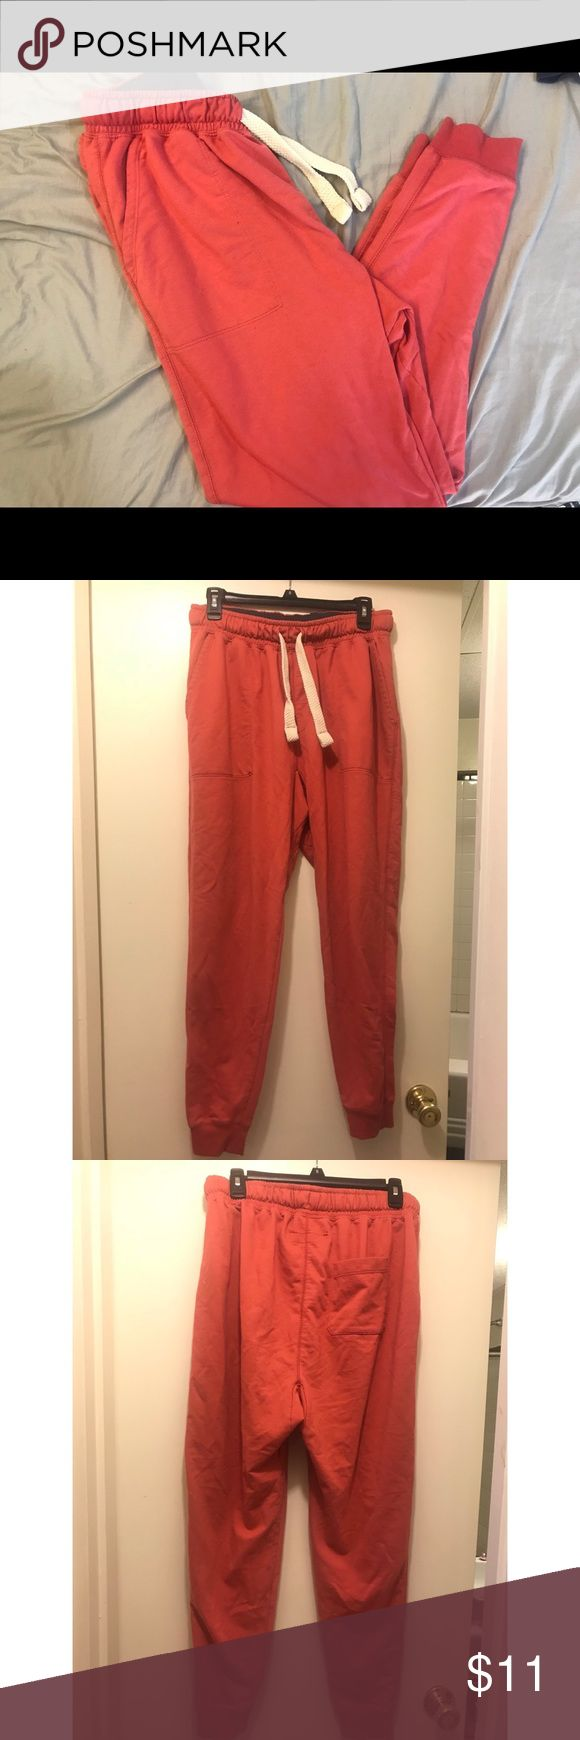 Cozy Men's SLIM FIT jogger sweatpants These salmon colored joggers are to die for! Super cozy, with a great fit! They are classified as Men's but a women look great in them too!  PRICE IS NEGOTIABLE!!! Cotton On Pants Sweatpants & Joggers